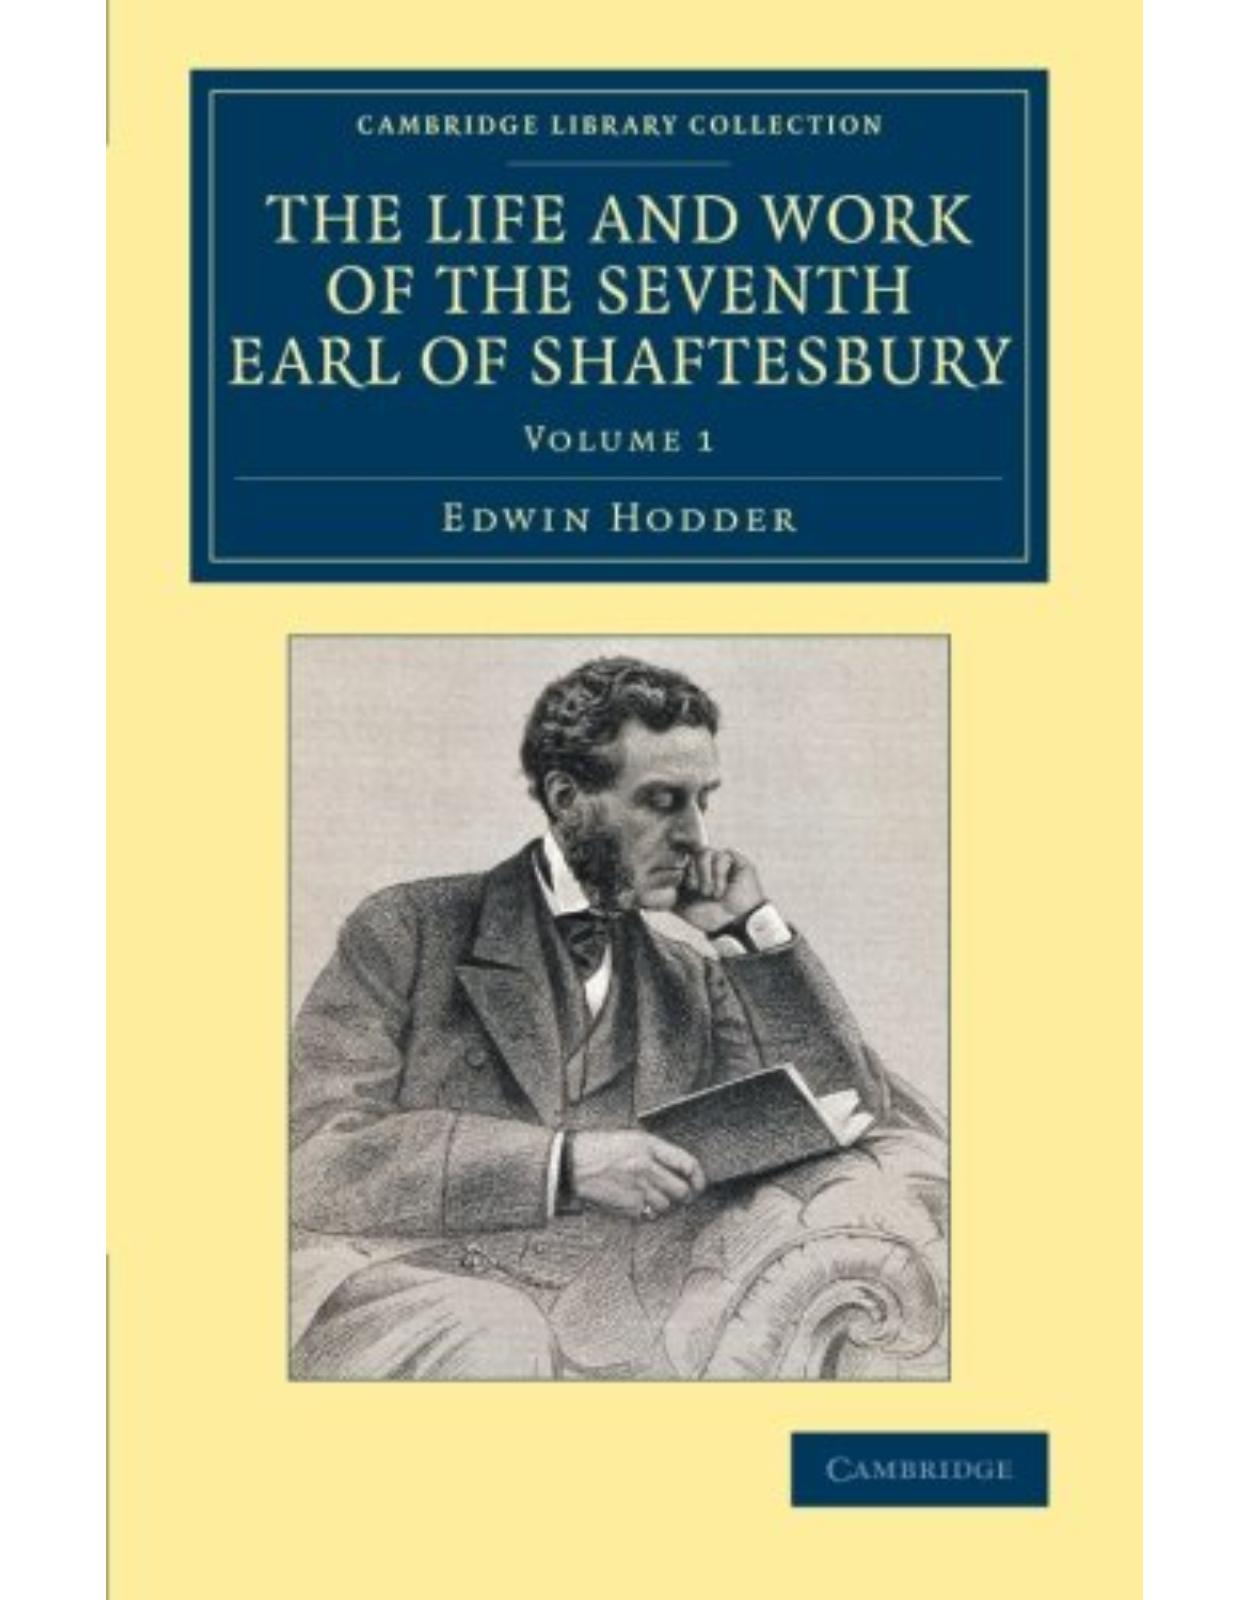 The Life and Work of the Seventh Earl of Shaftesbury, K.G. 3 Volume Set (Cambridge Library Collection - British and Irish History, 19th Century)